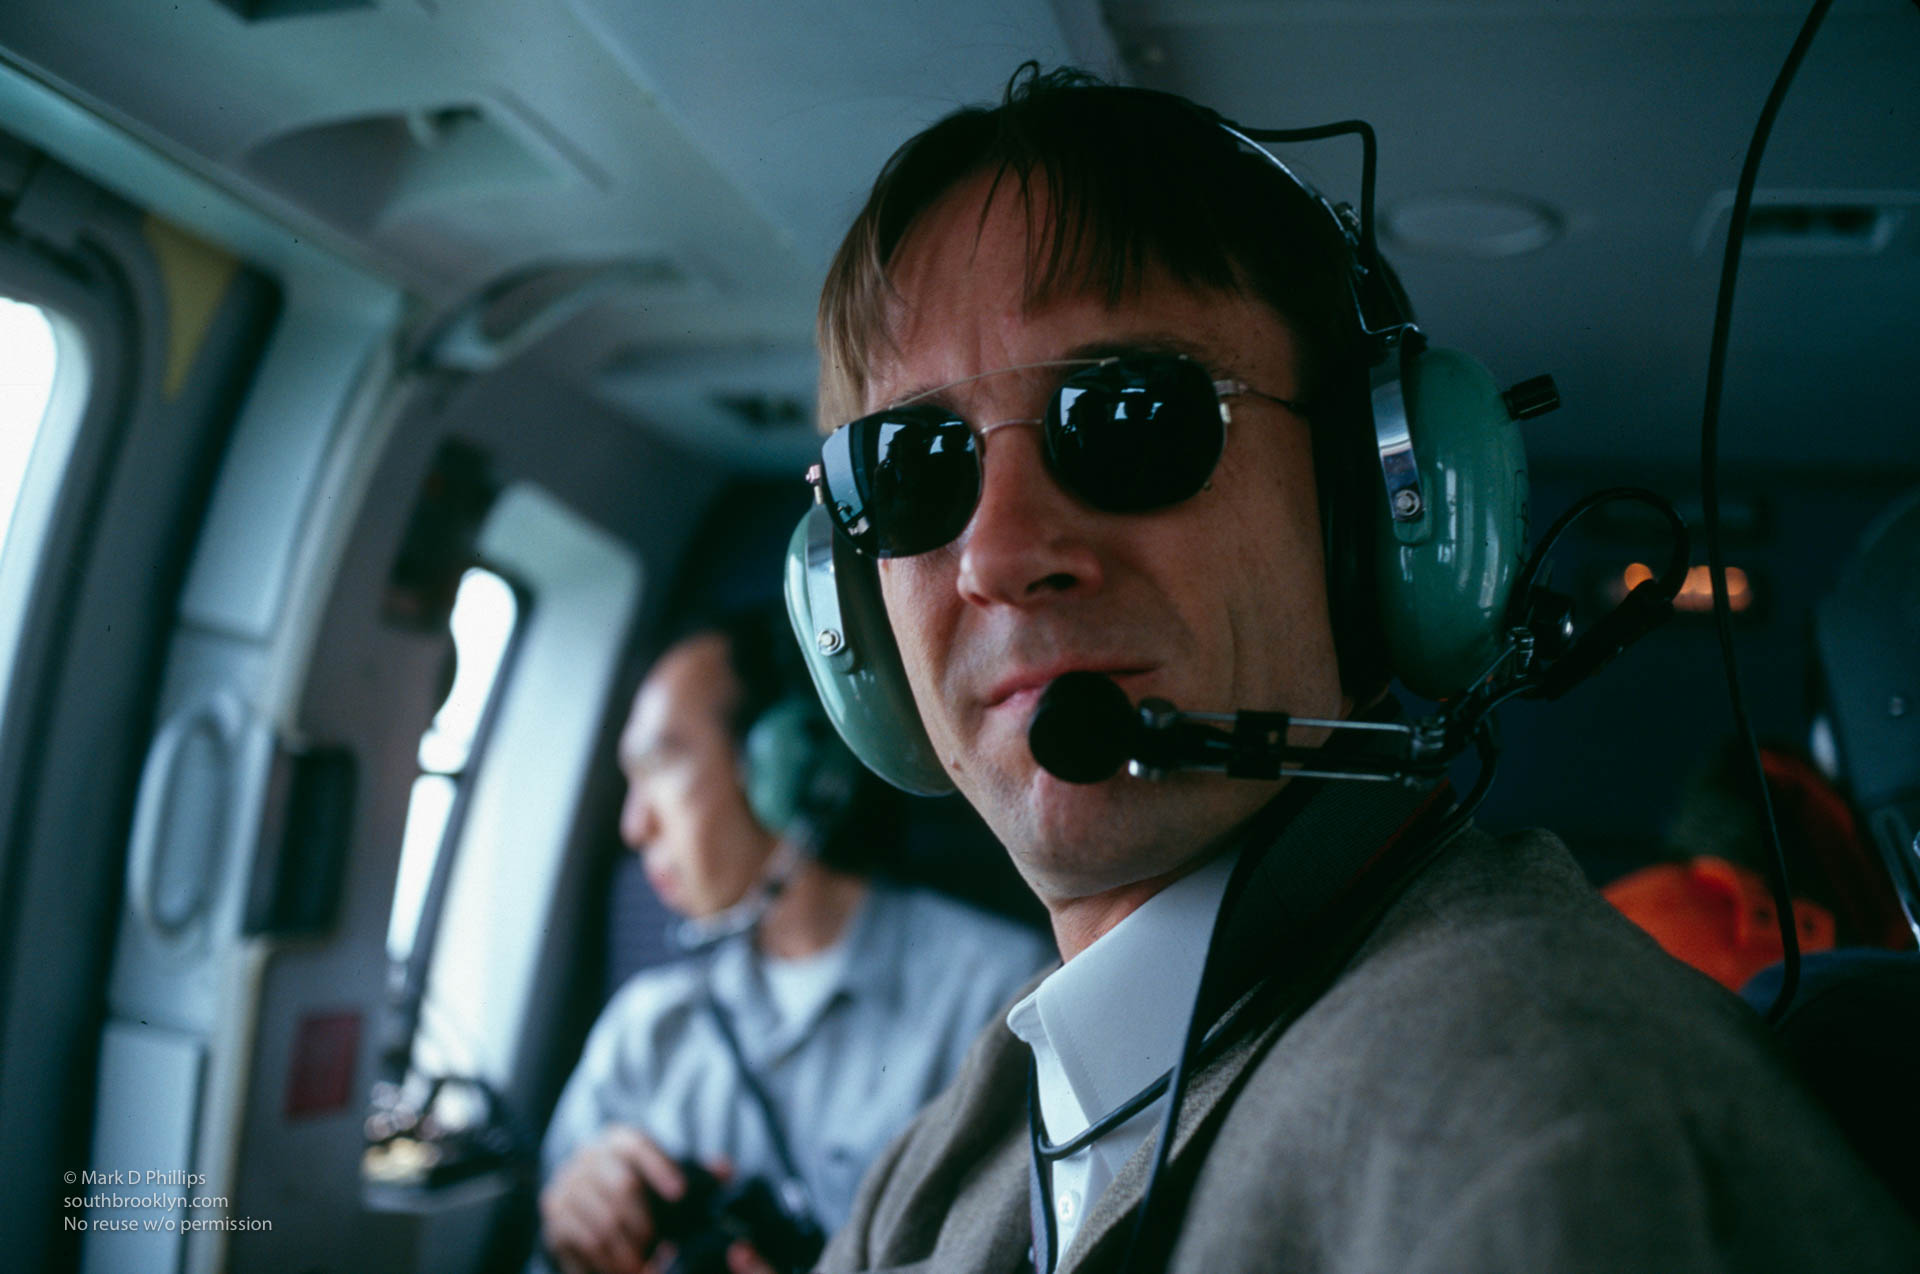 Mark D Phillips in helicopter over Qutang Gorge and the Yangtze River, Mark D Phillips